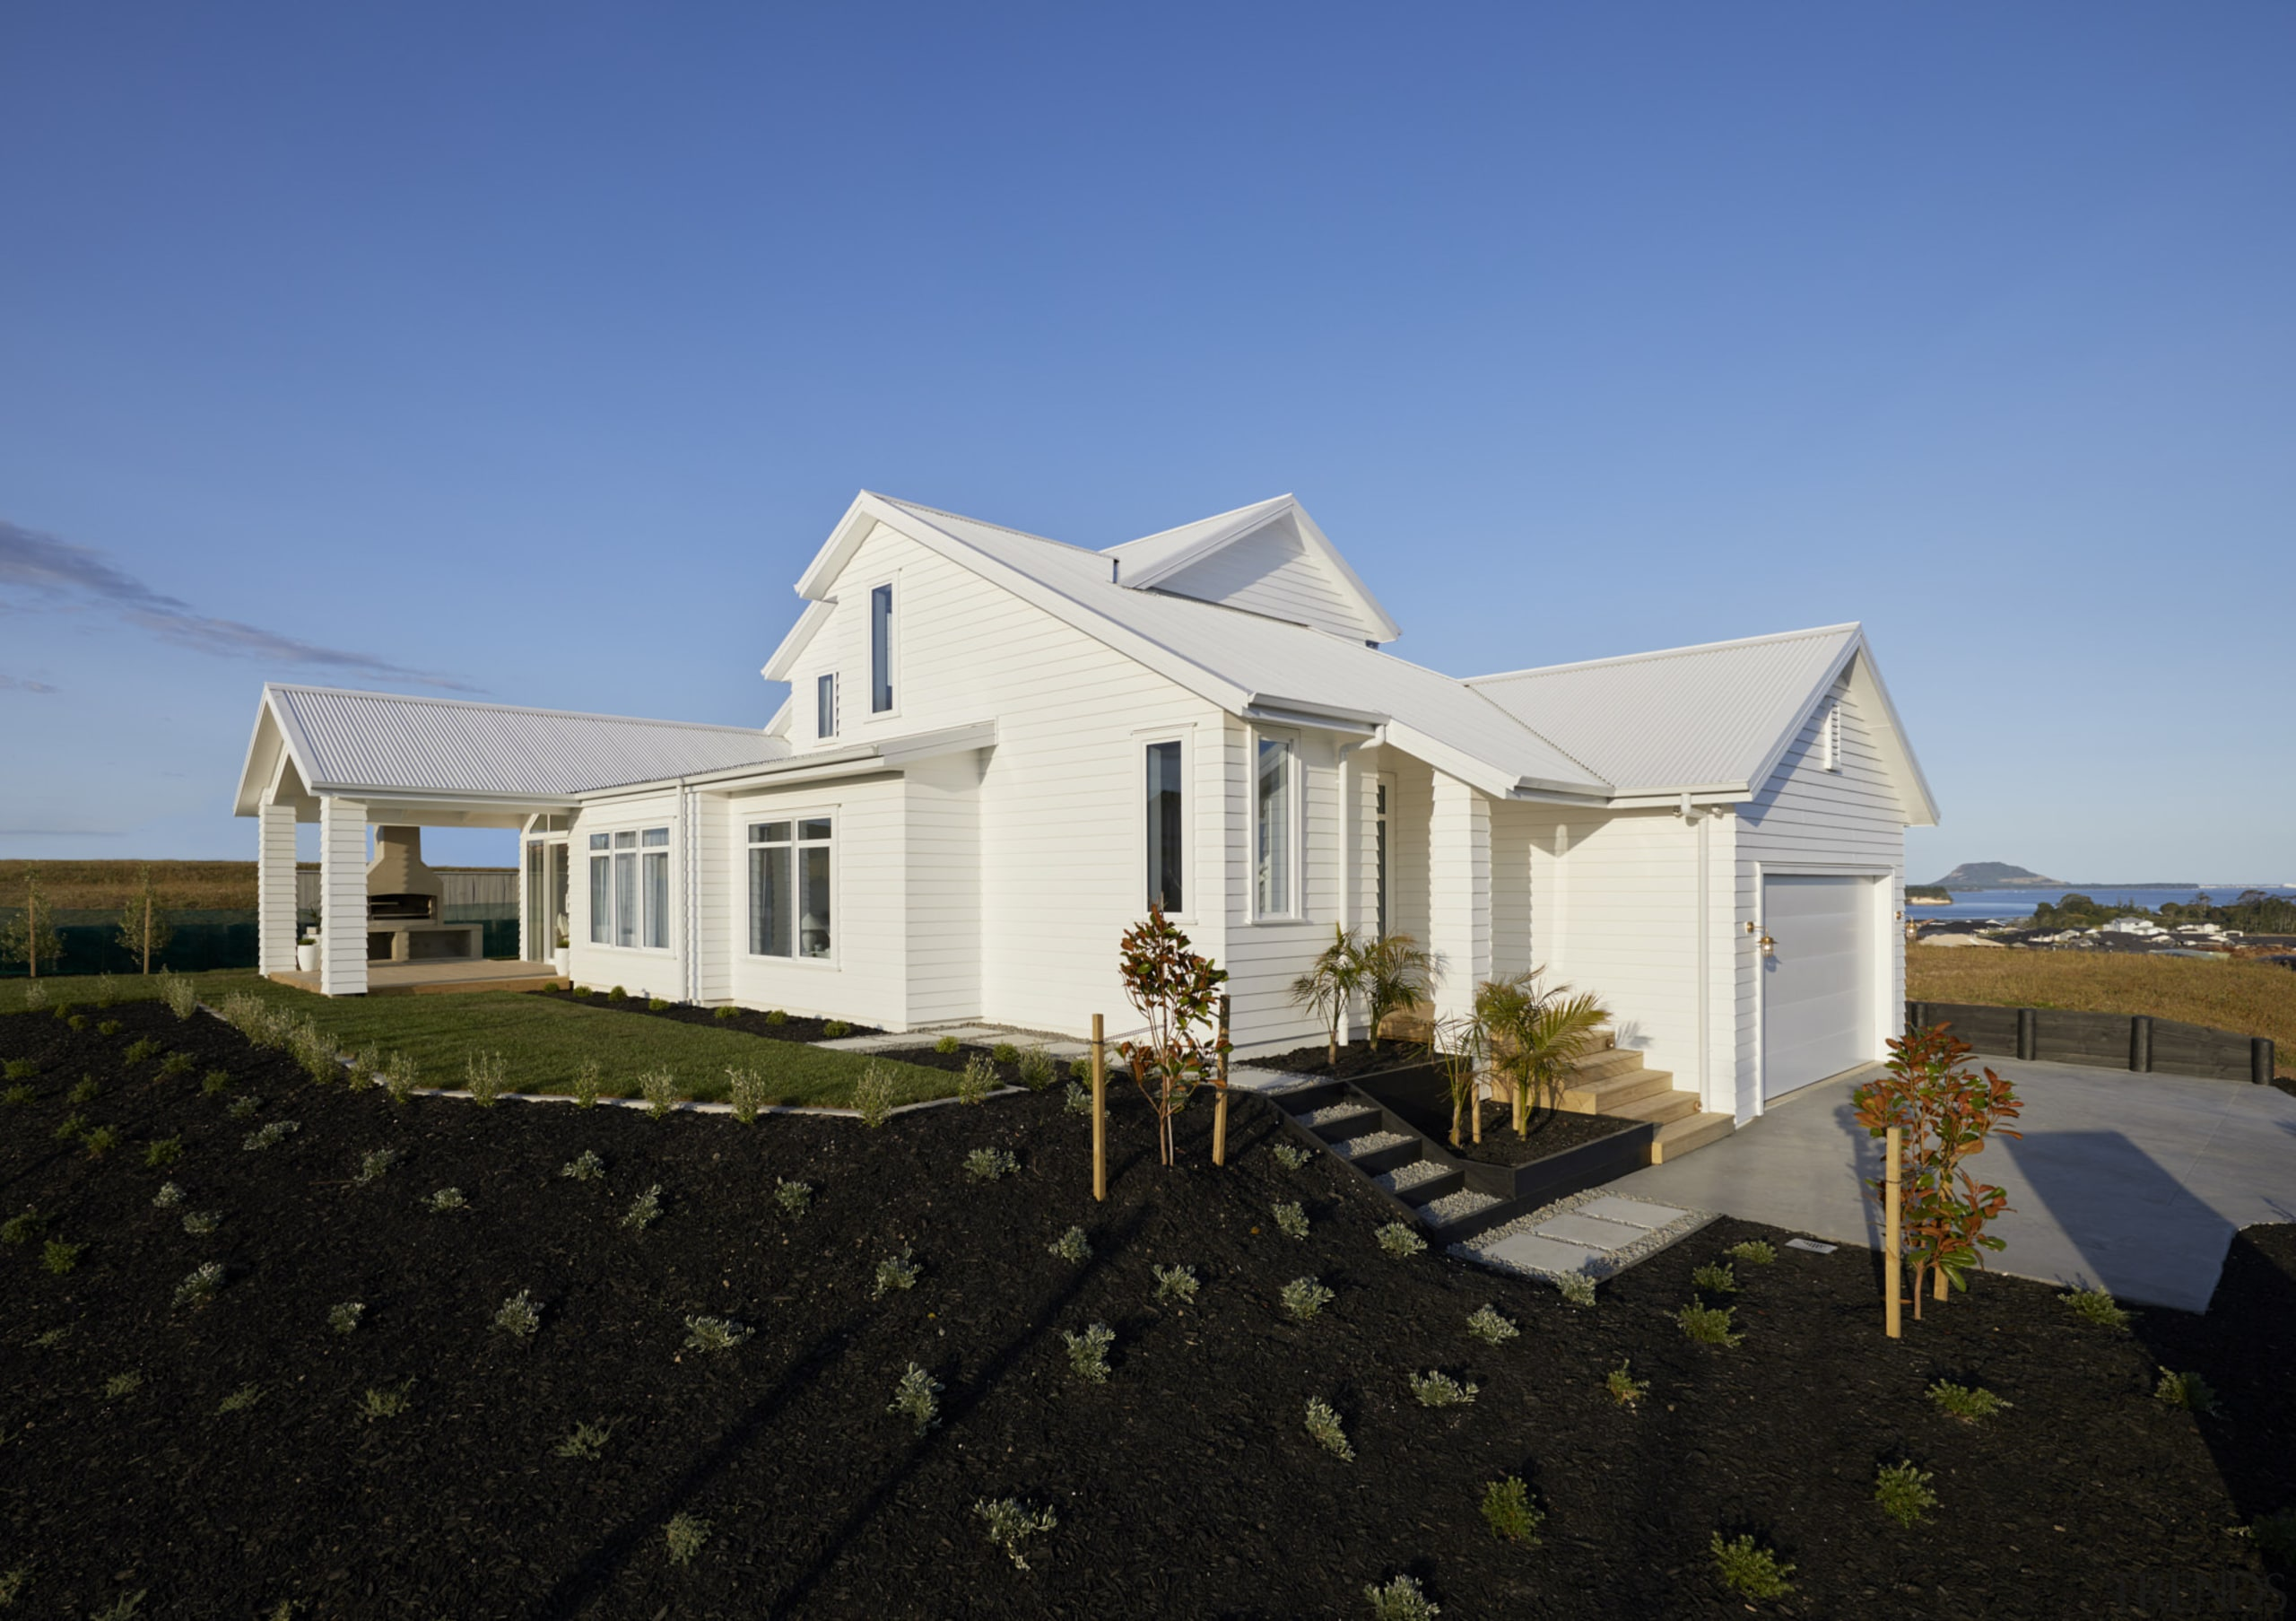 White weatherboard cladding is central to the Landmark